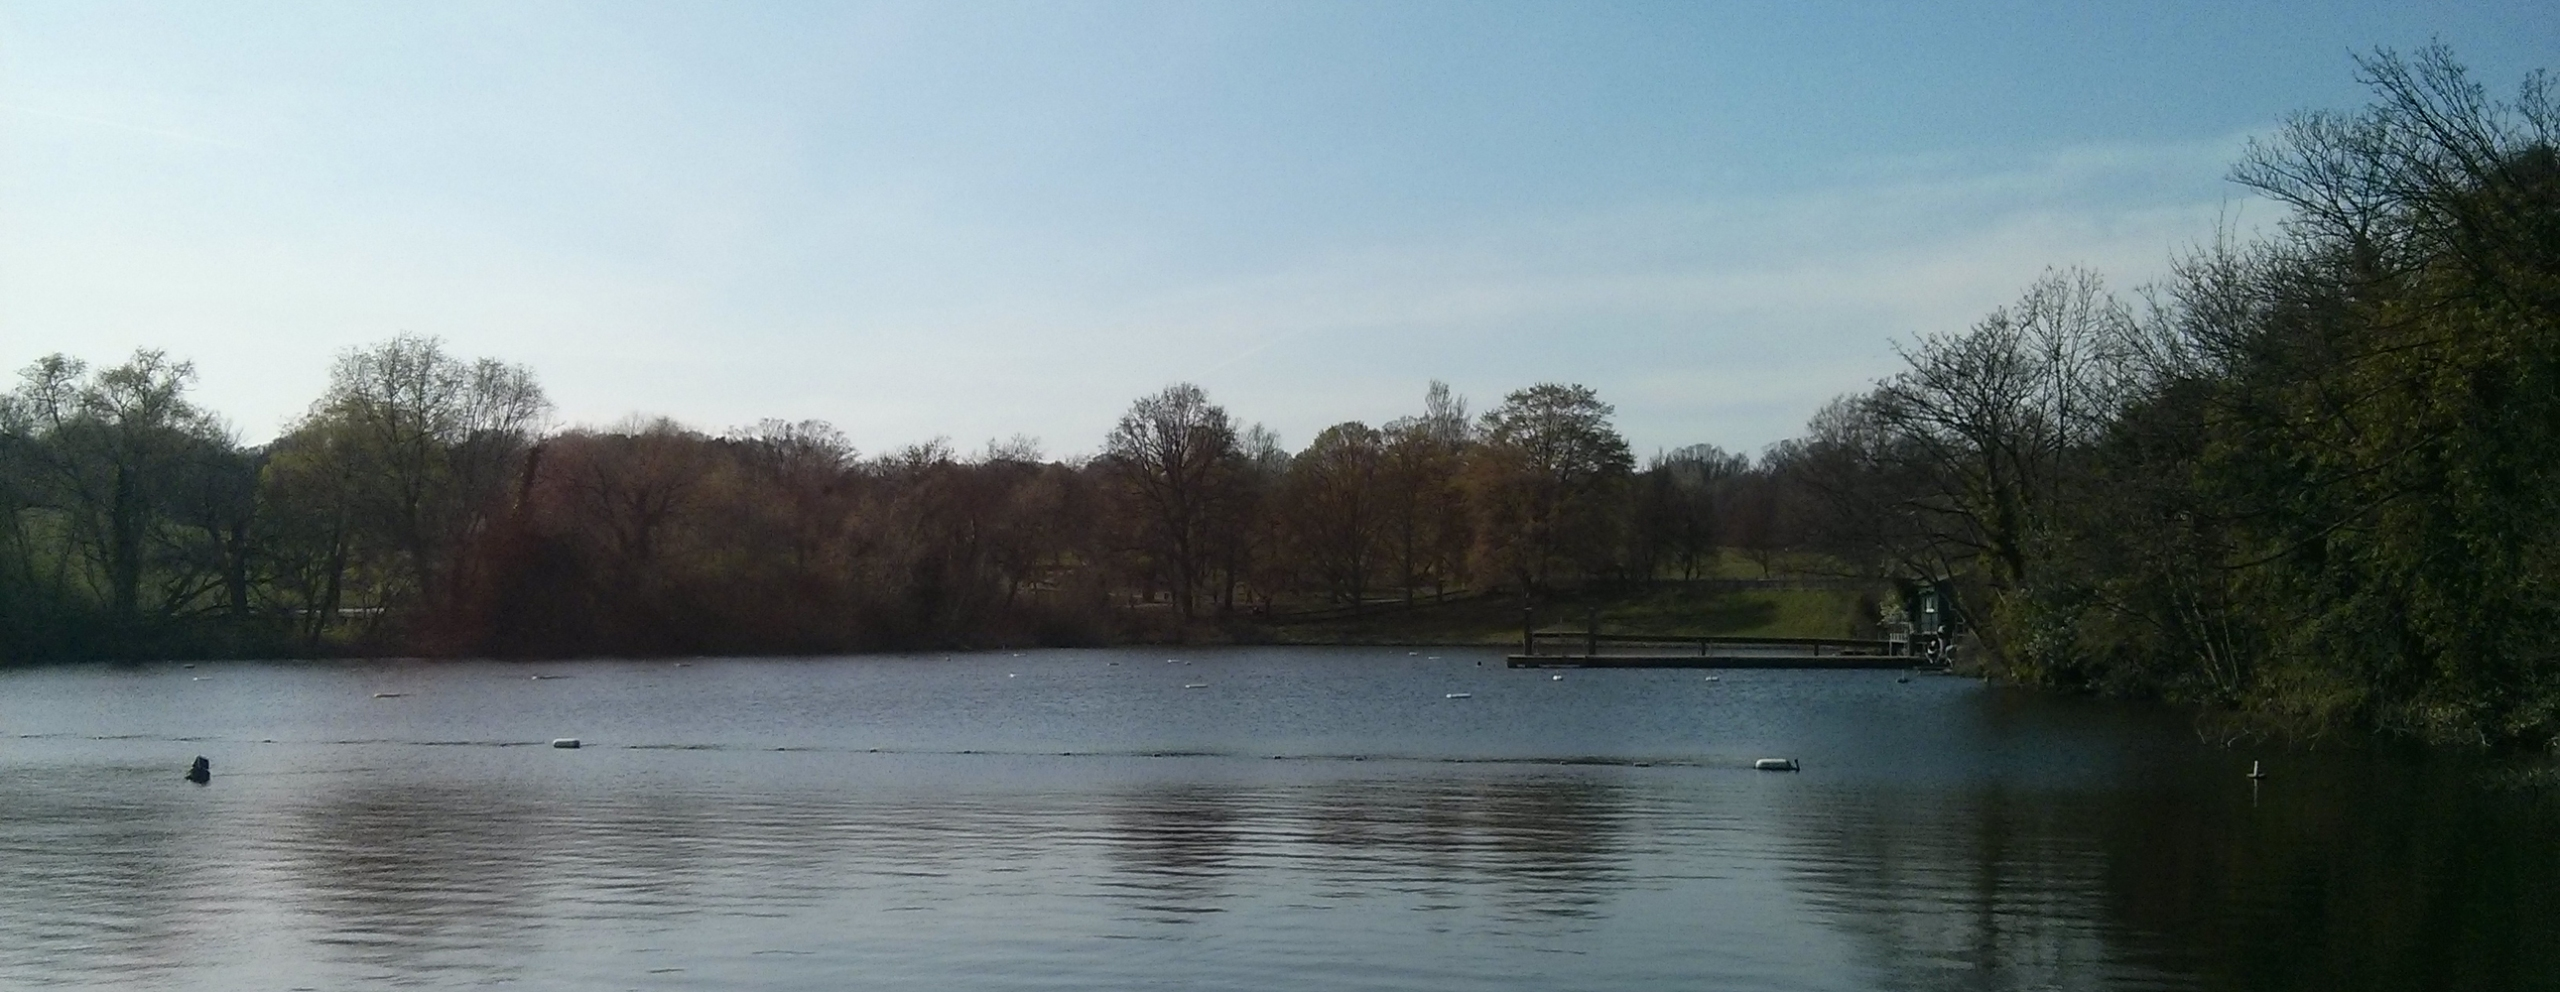 The men's pond at Highgate, March 2014